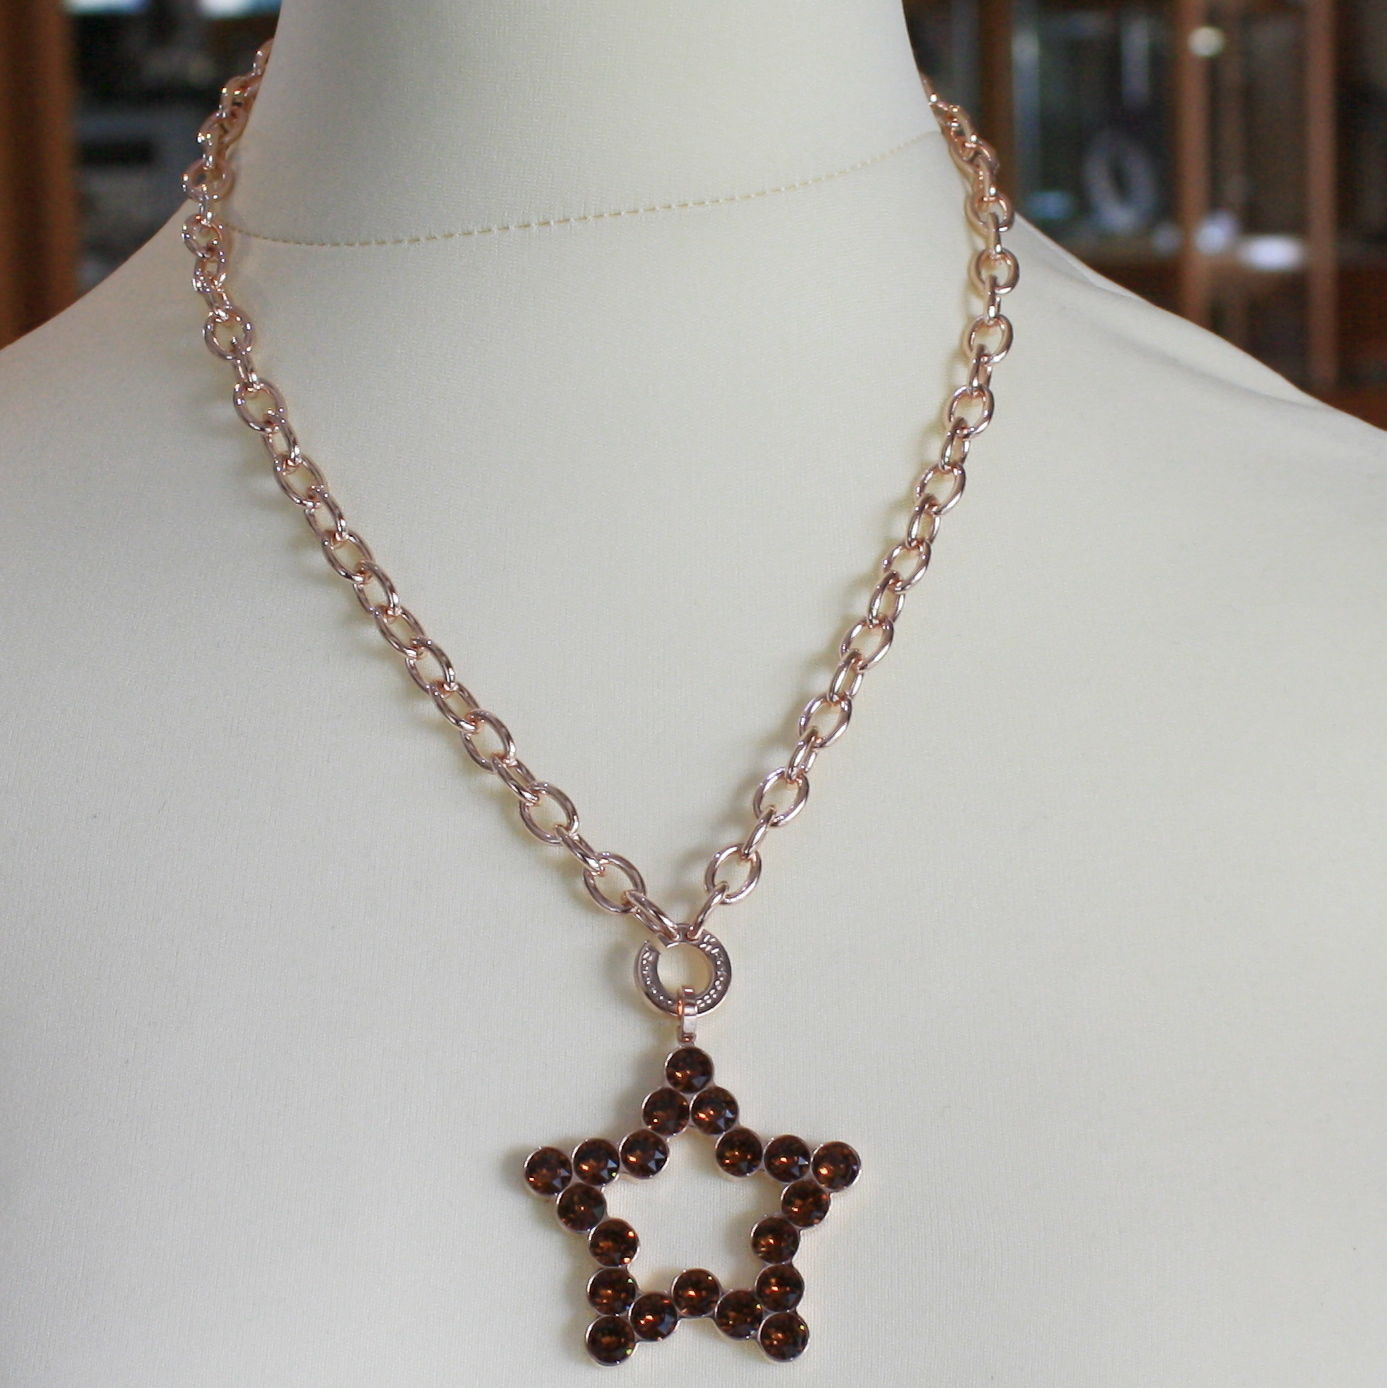 ROSE BRONZE REBECCA NECKLACE BIG STAR WITH BROWN CRYSTAL CT 20.00 MADE IN ITALY